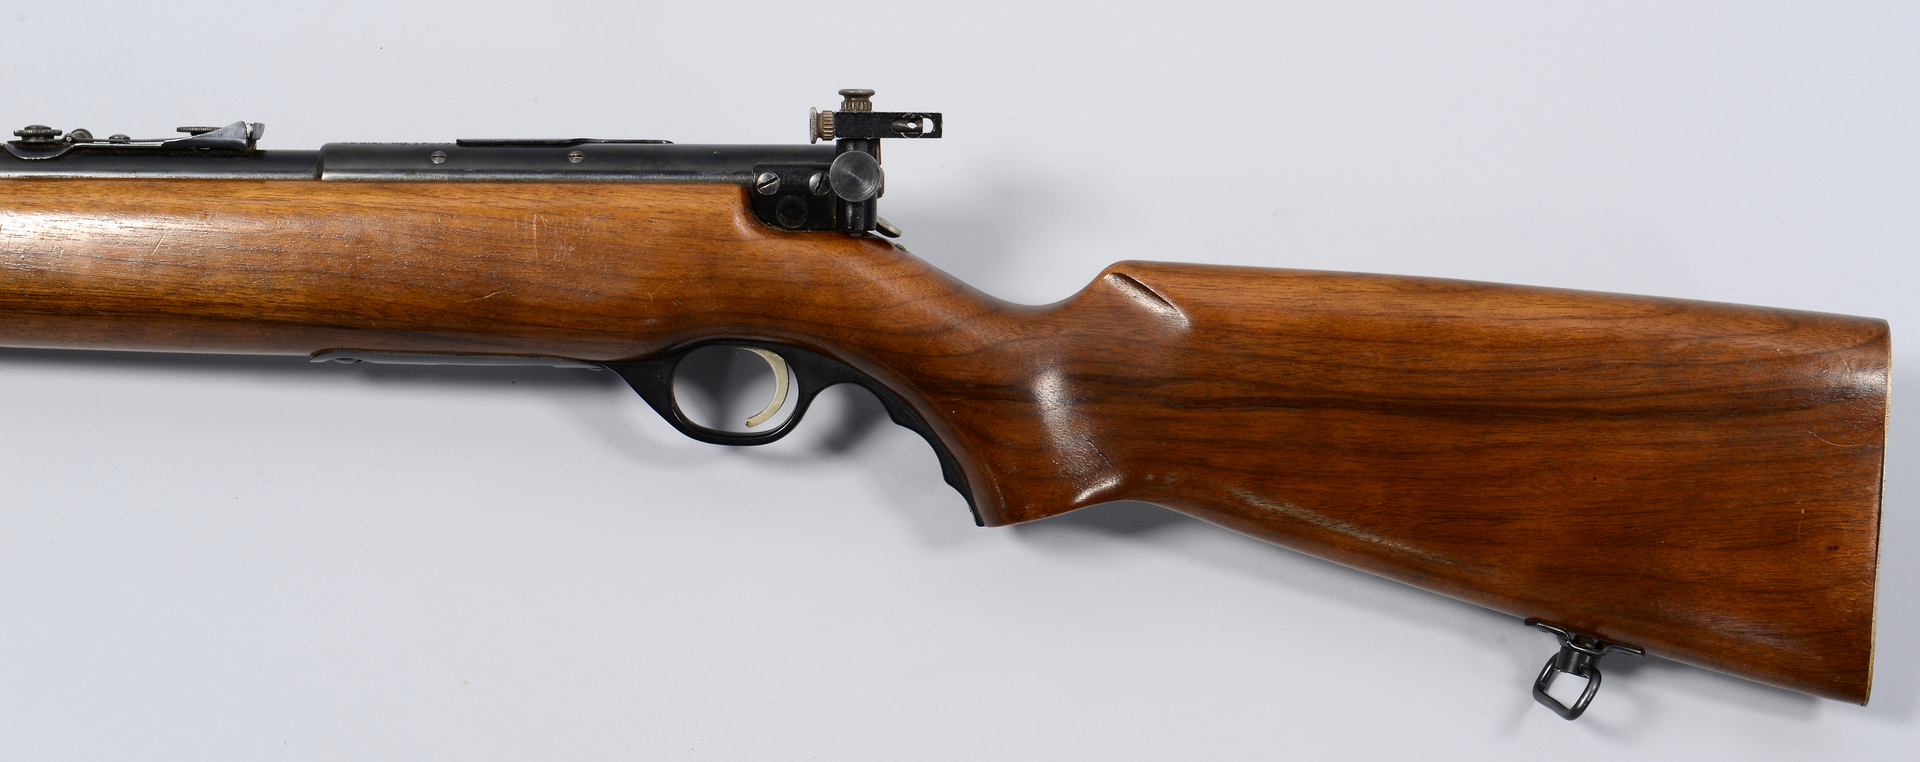 Hammer Down Auctions >> Lot 574: 2 Military bolt-action Rifles